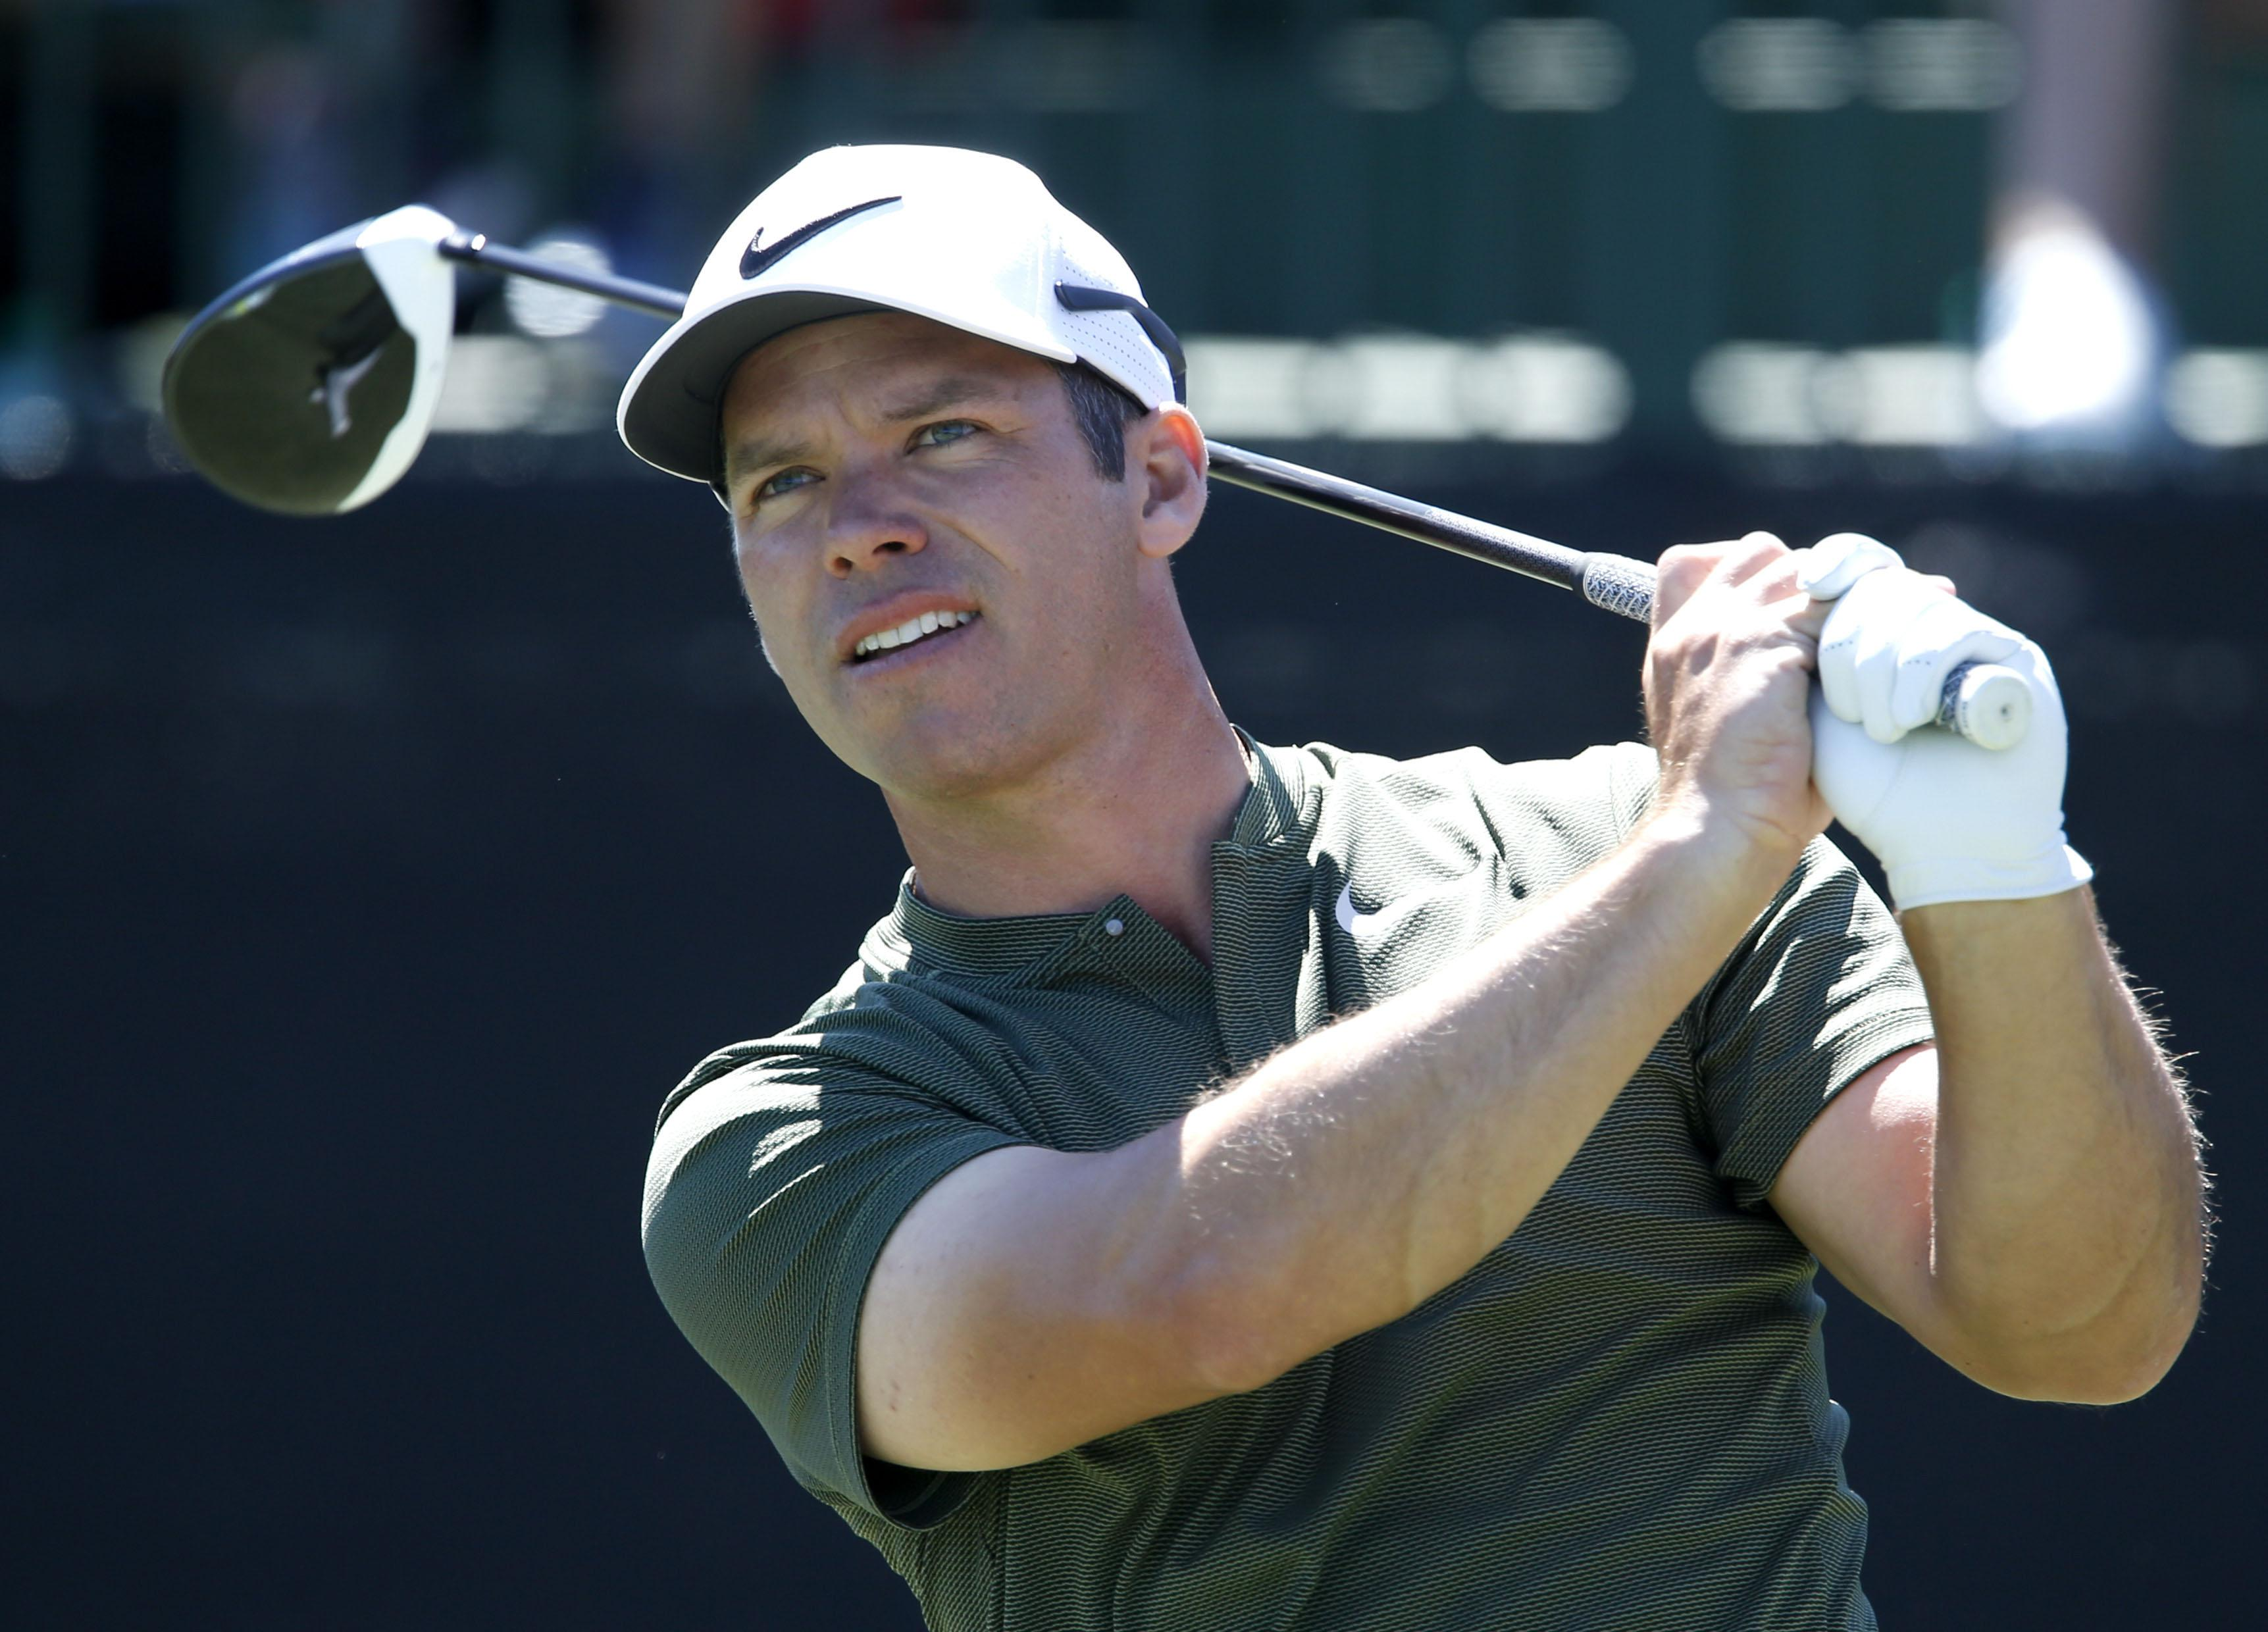 Paul Casey won his first European Tour event back in 2001